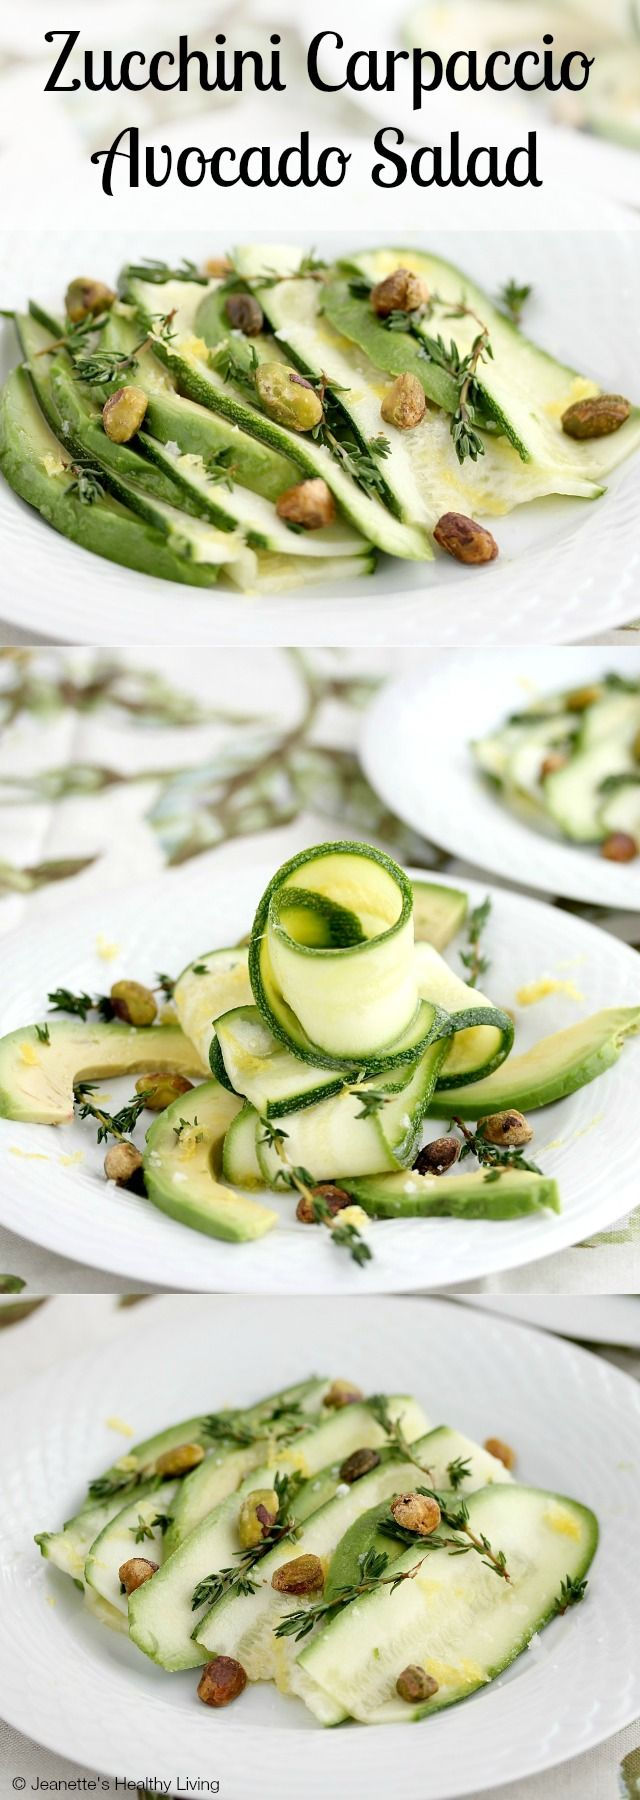 Zucchini Carpaccio Avocado Salad with Pistachios - an elegant and light salad that will impress your guests ~ http://jeanetteshealthyliving.com #fcpinpartners